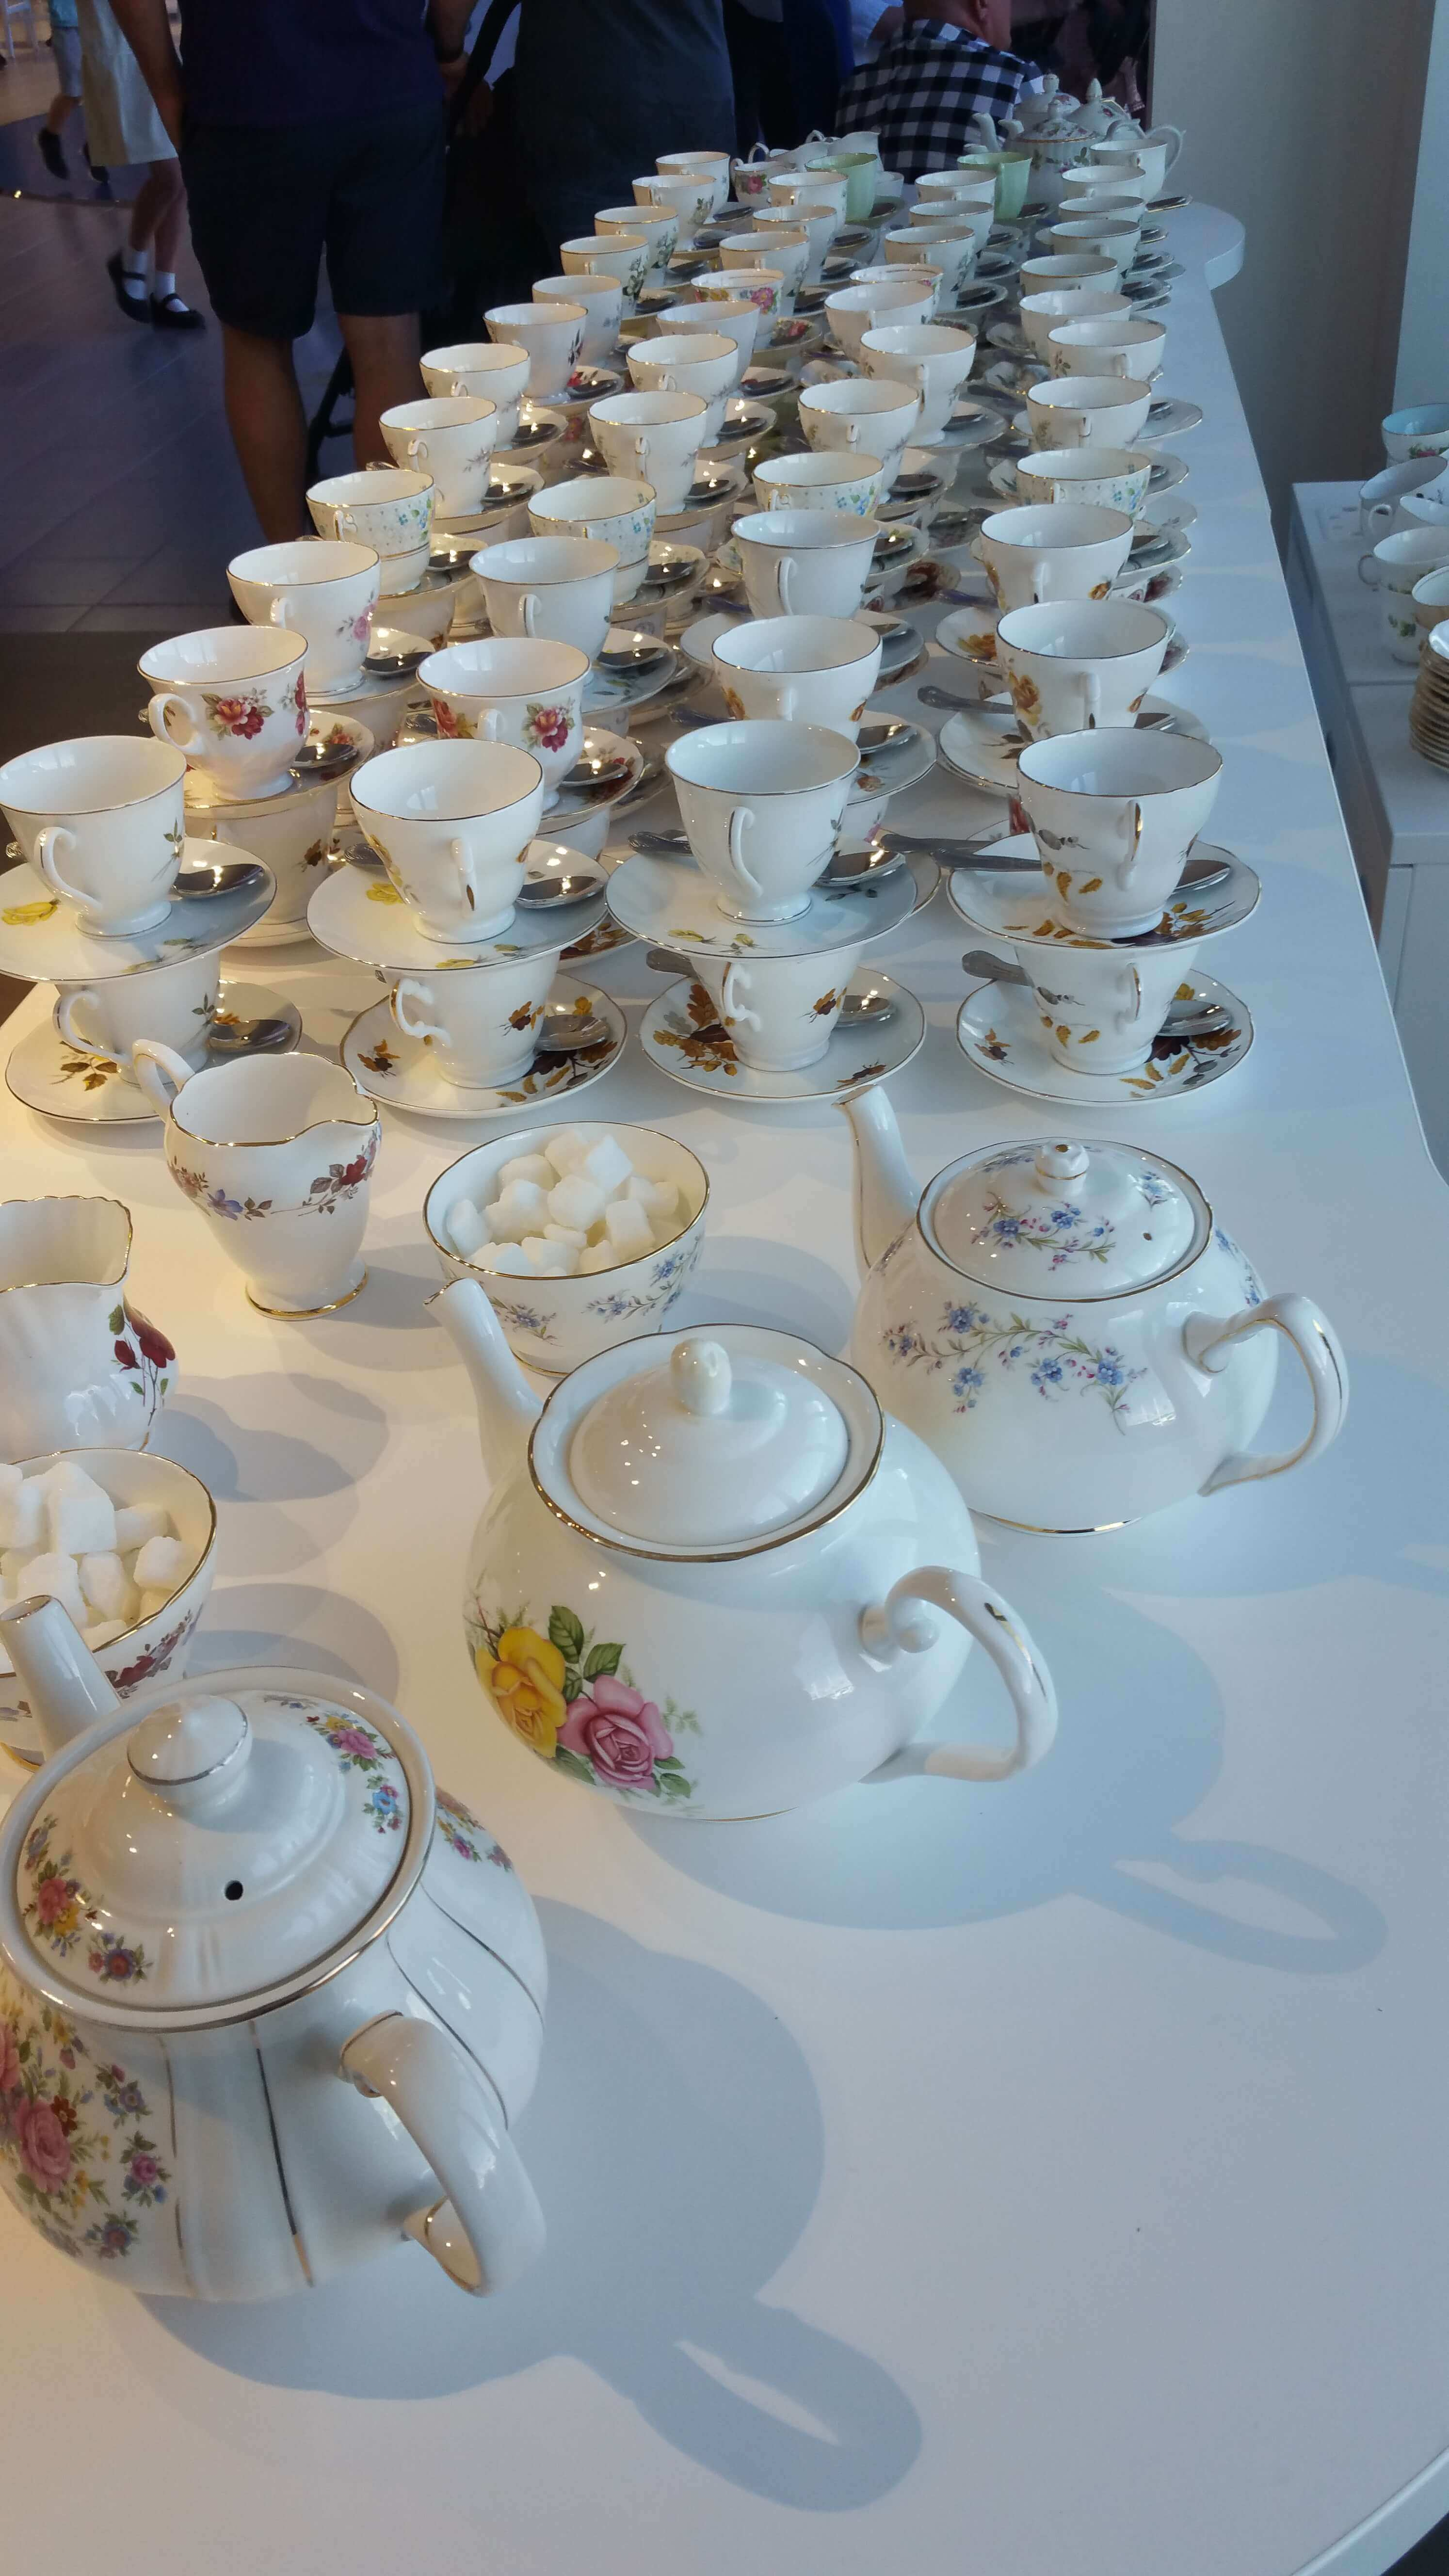 Photo shows vintage tea cups and tea pots lined up ready for tea to be served